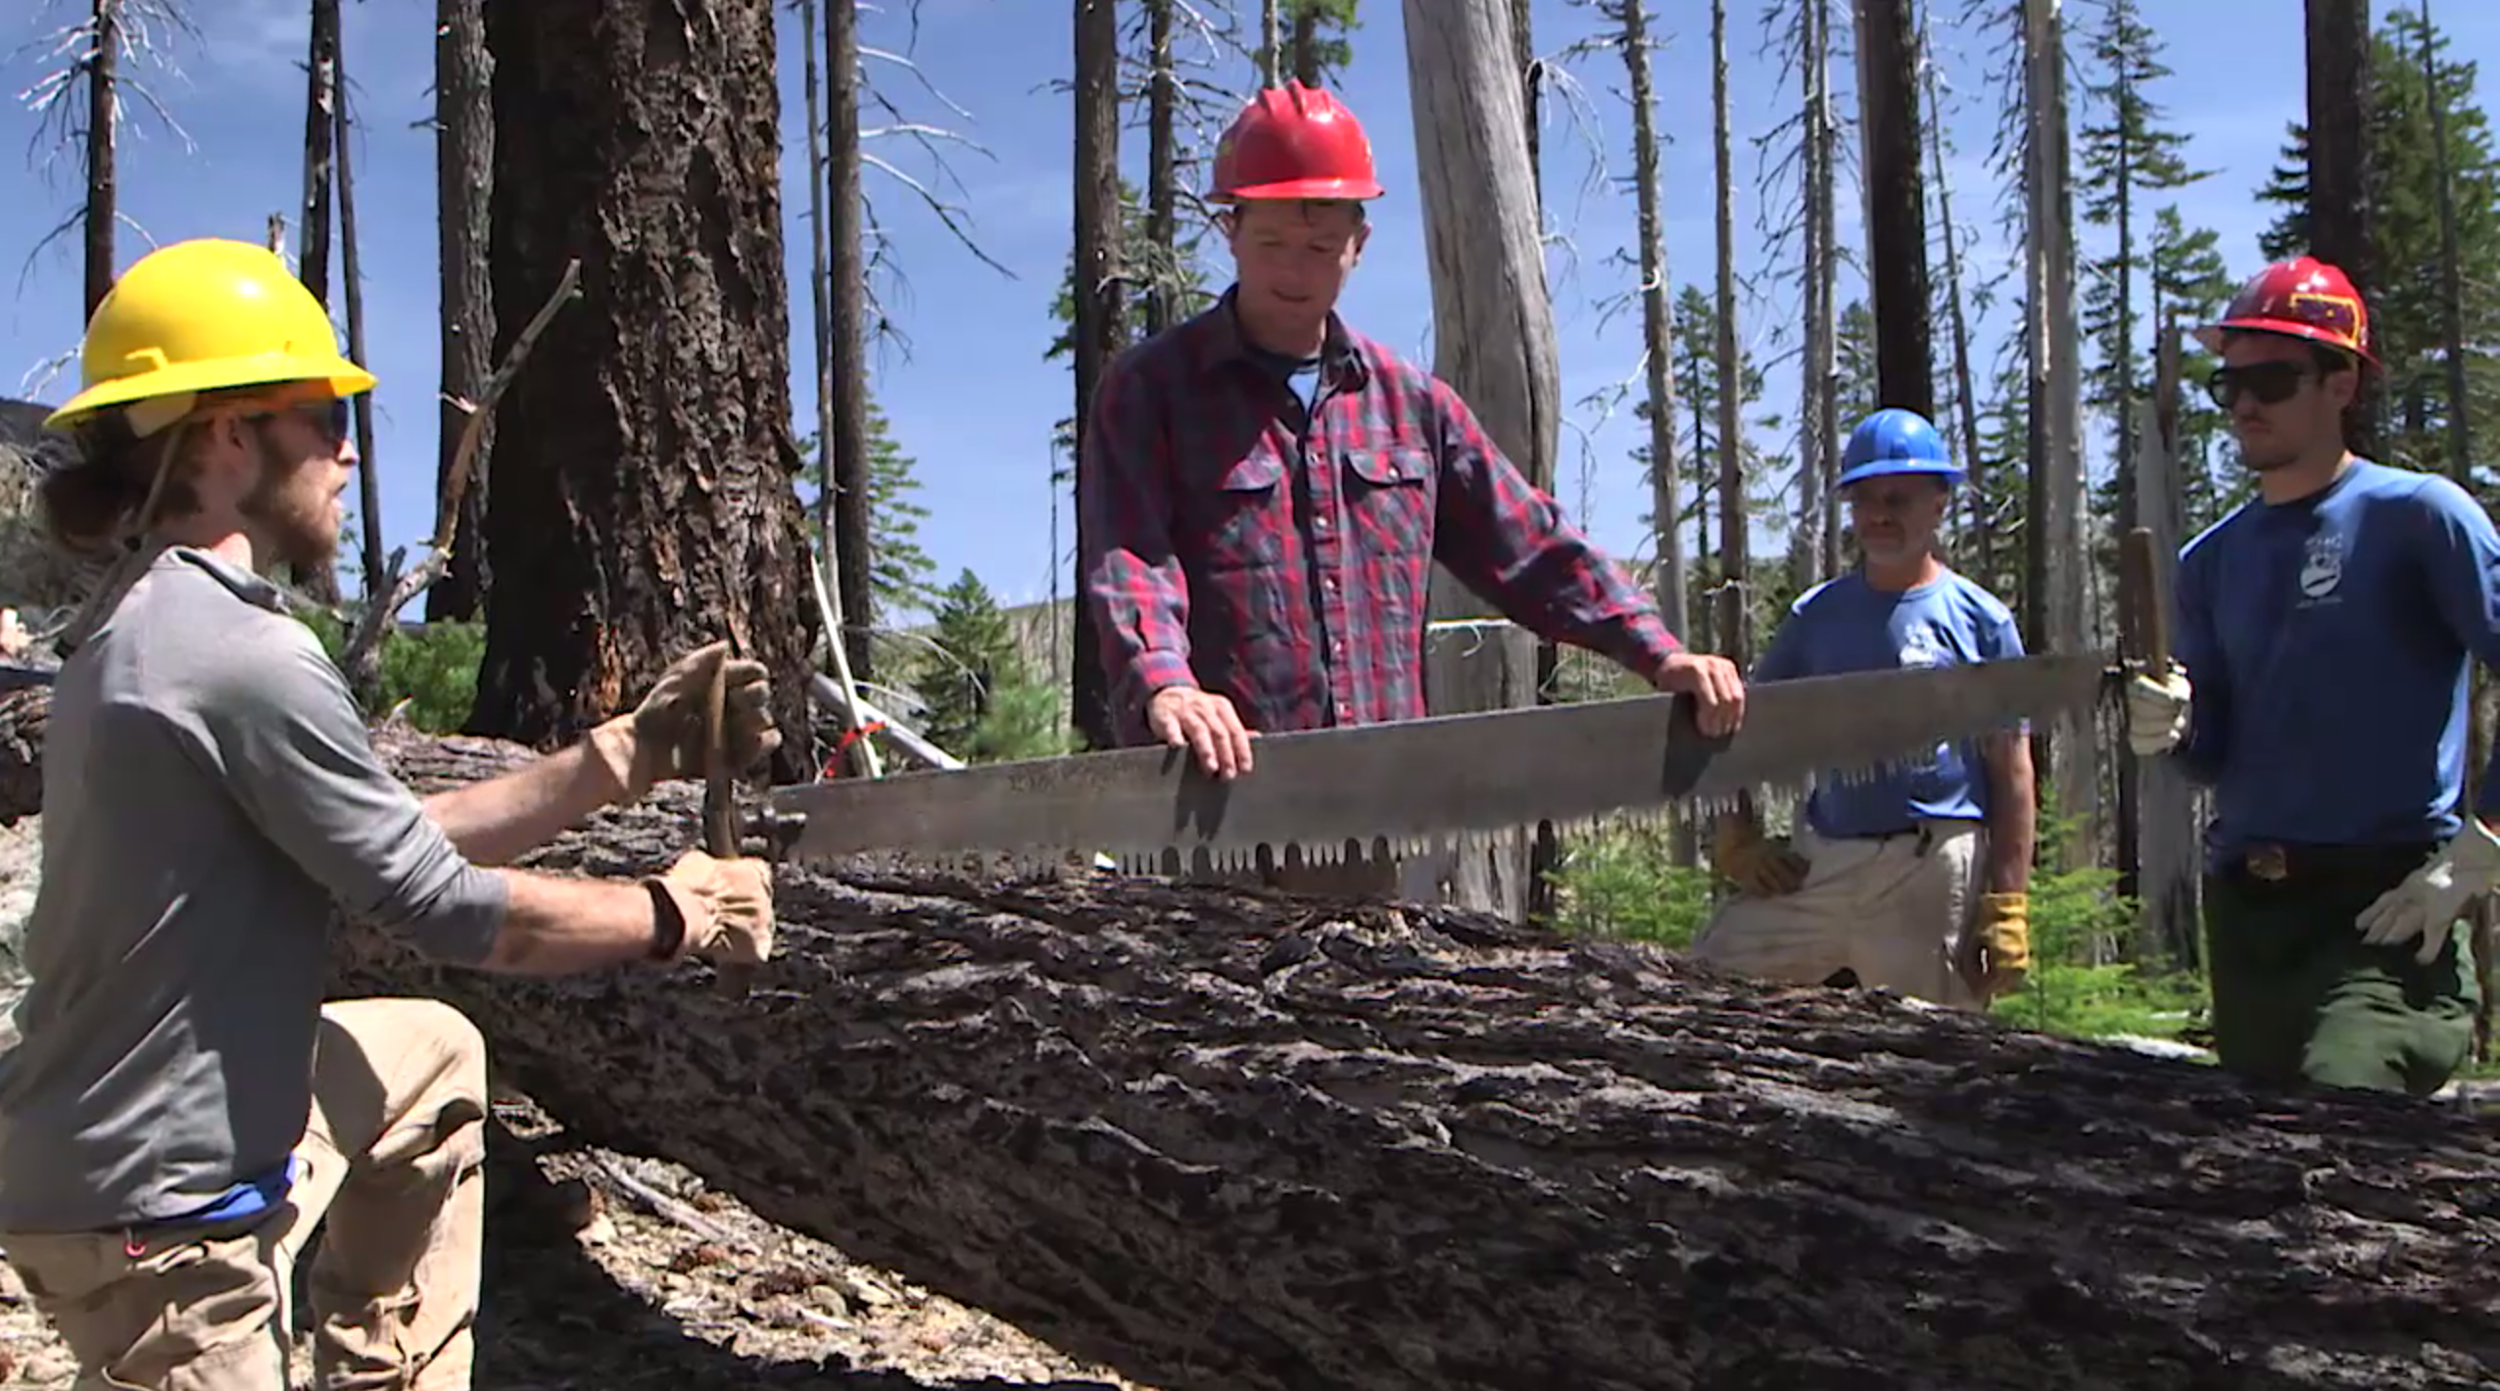 Aaron Babcock teaches volunteers how to use an old-fashioned crosscut saw.